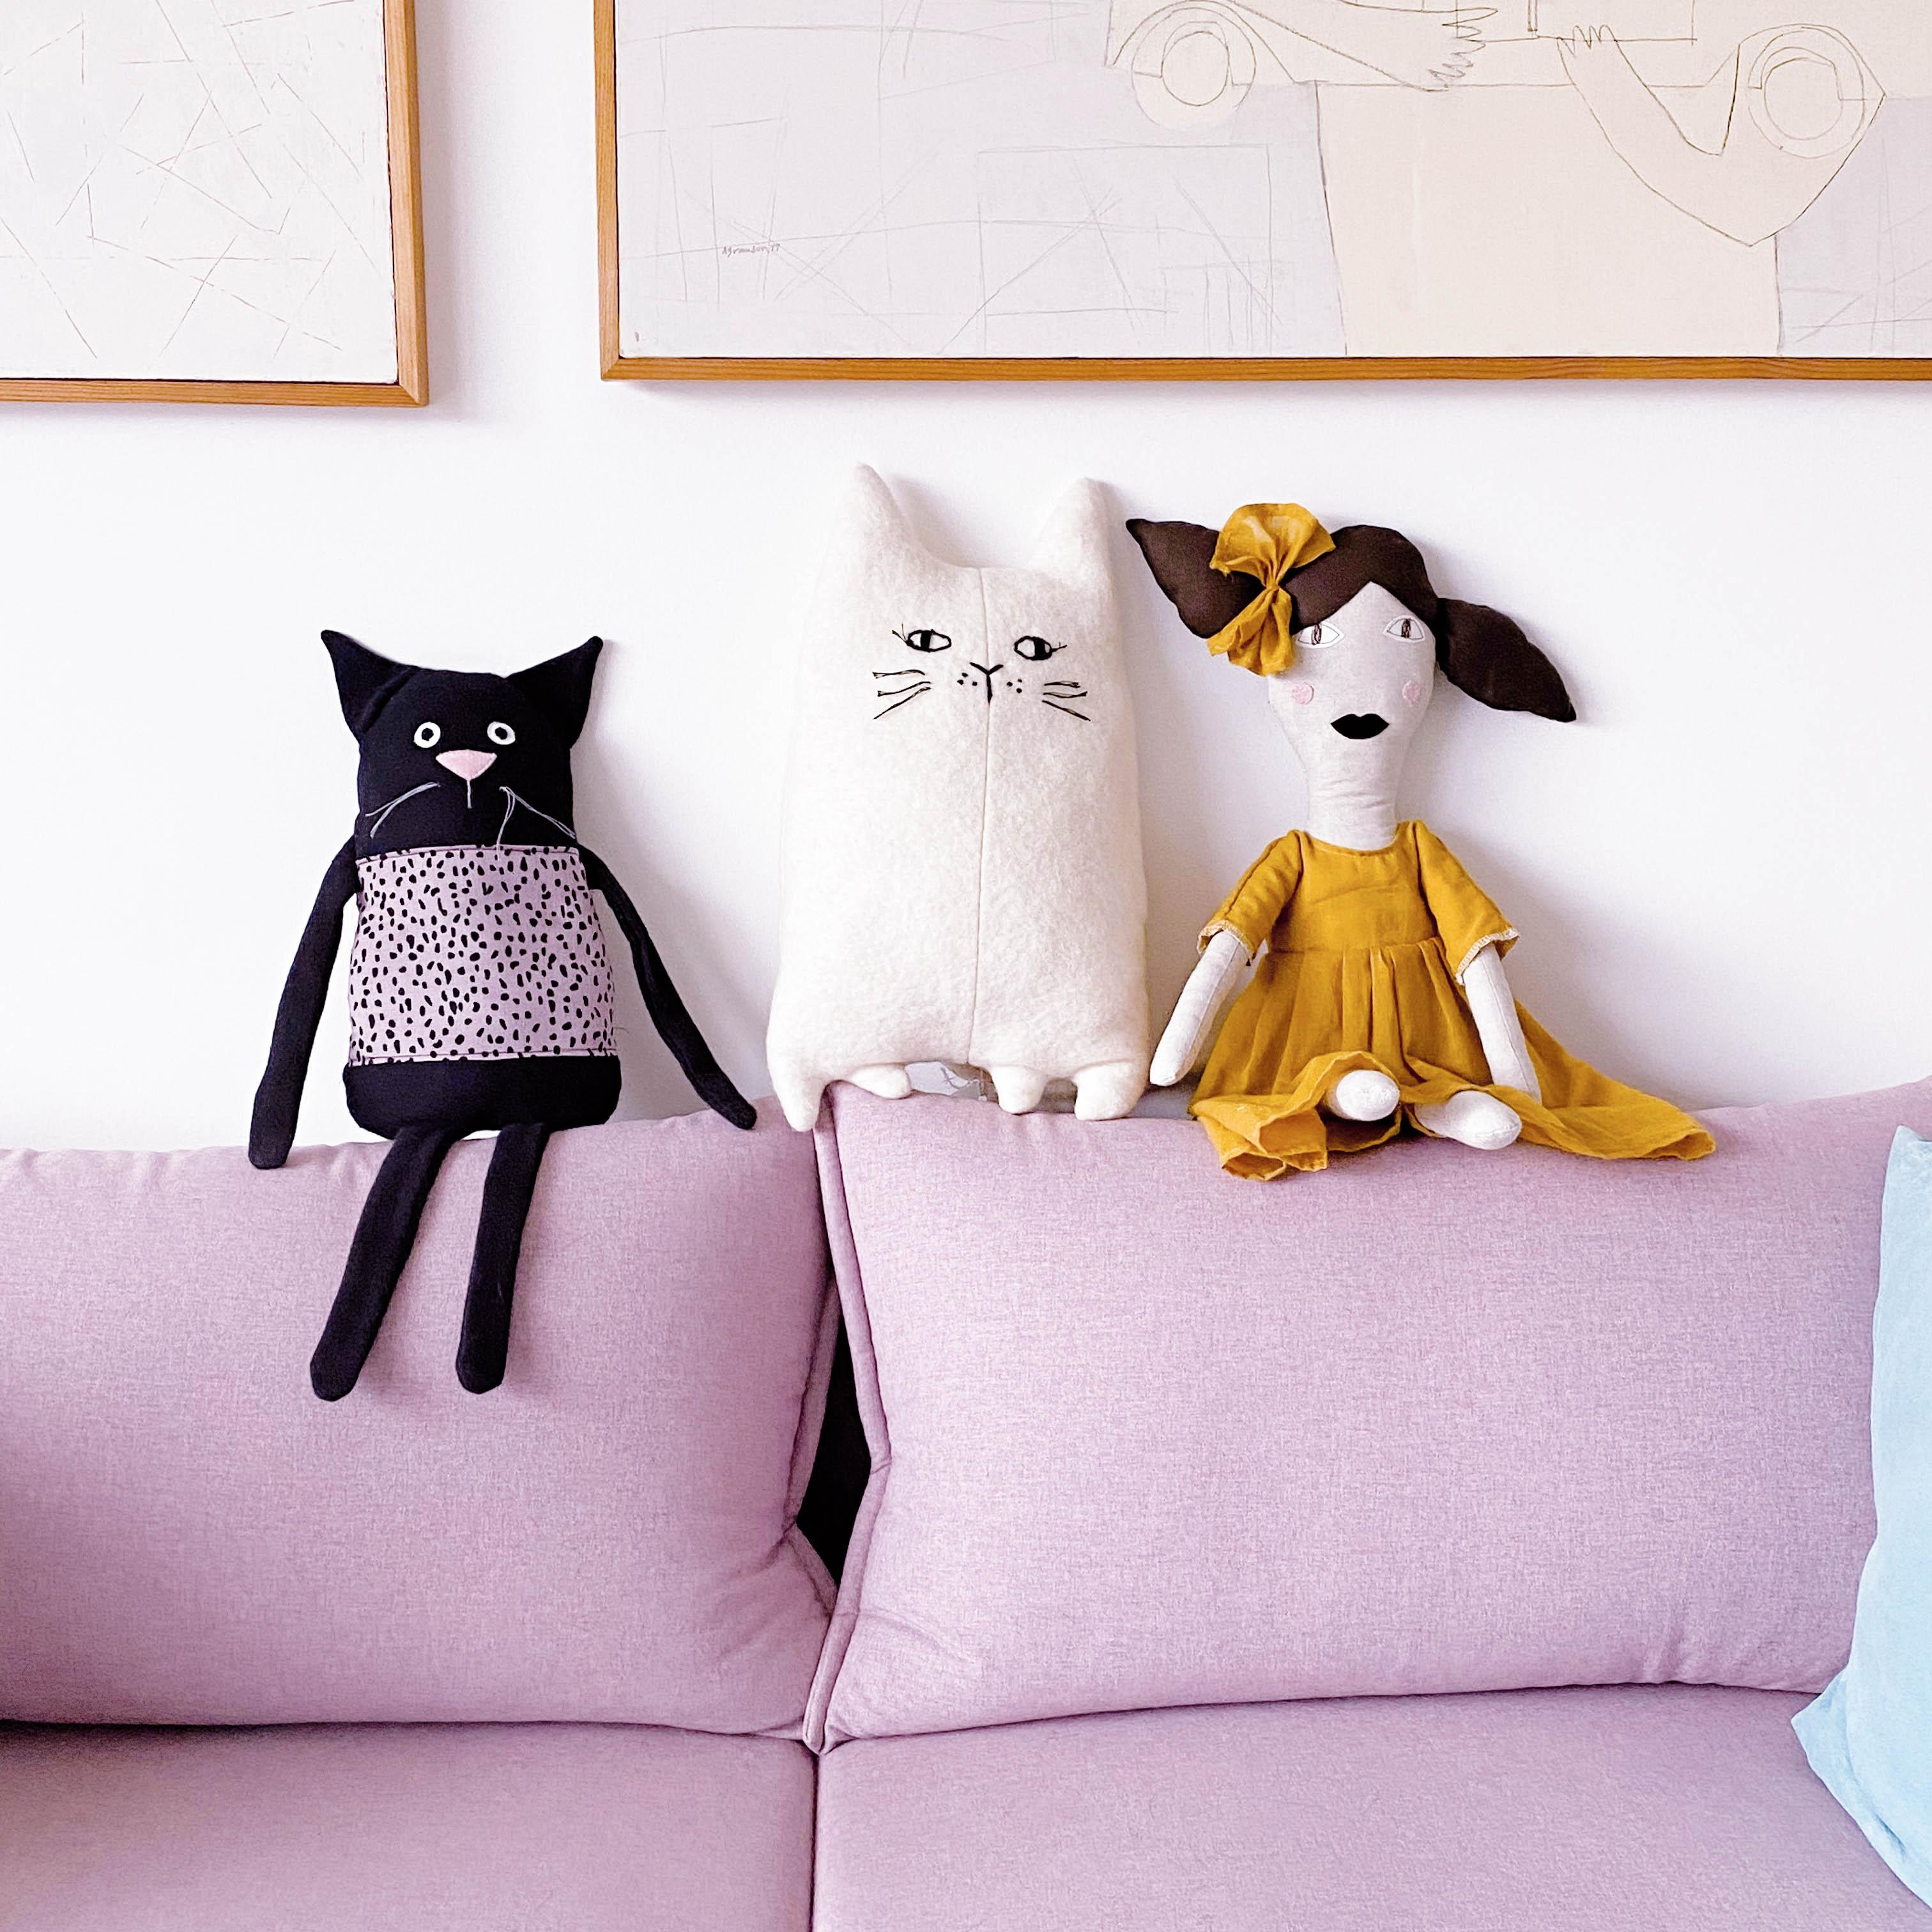 Designer dolls for interior and decoration.